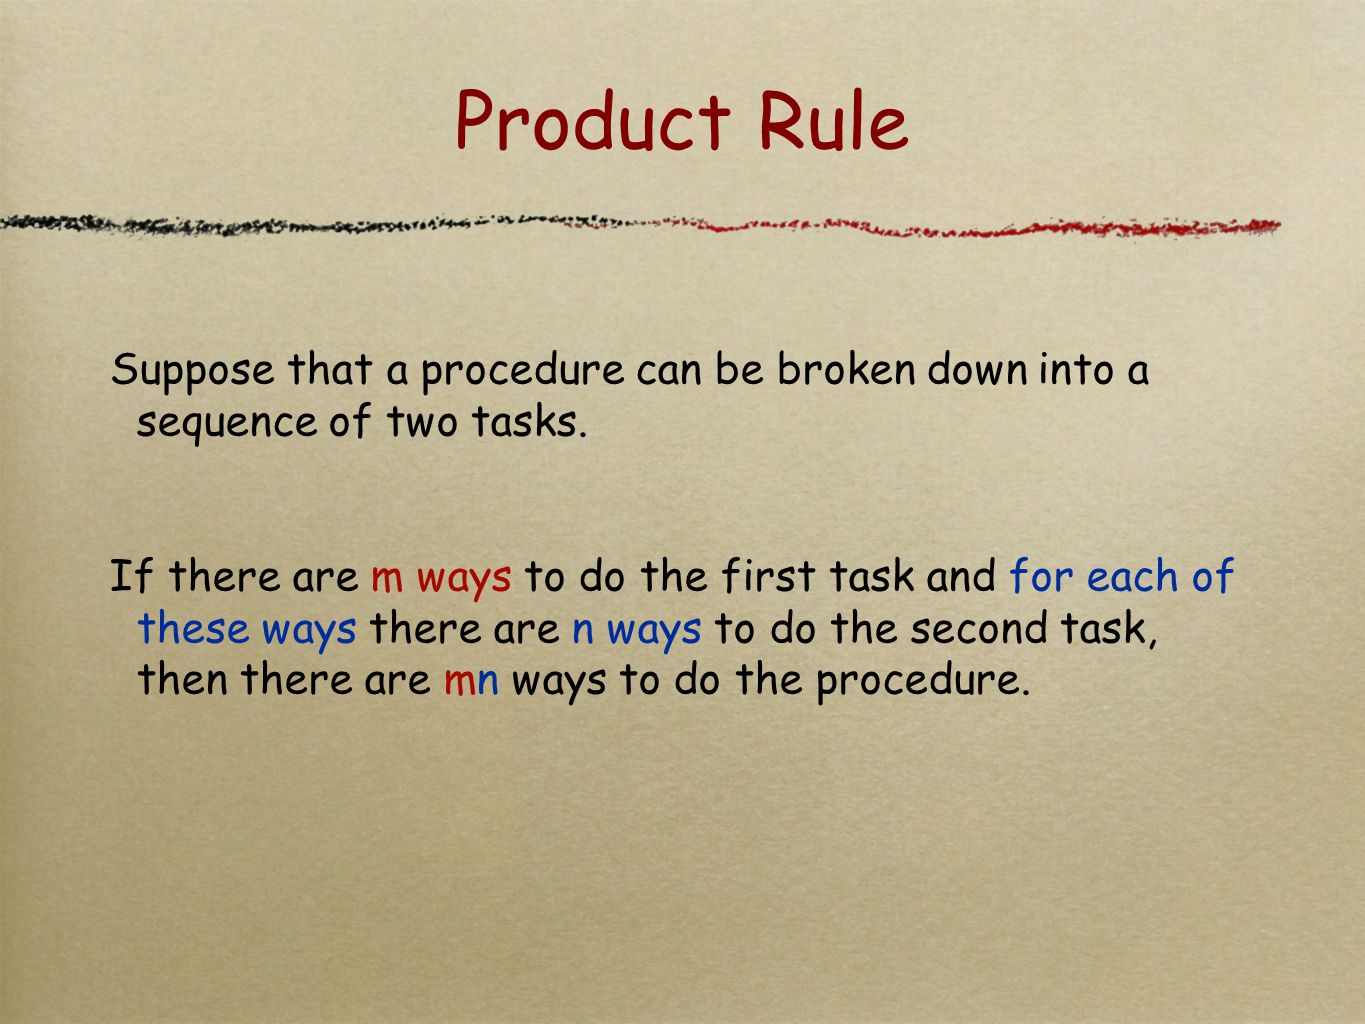 Product Rule Suppose that a procedure can be broken down into a sequence of two tasks. If there are m ways to do the first task and for each of these